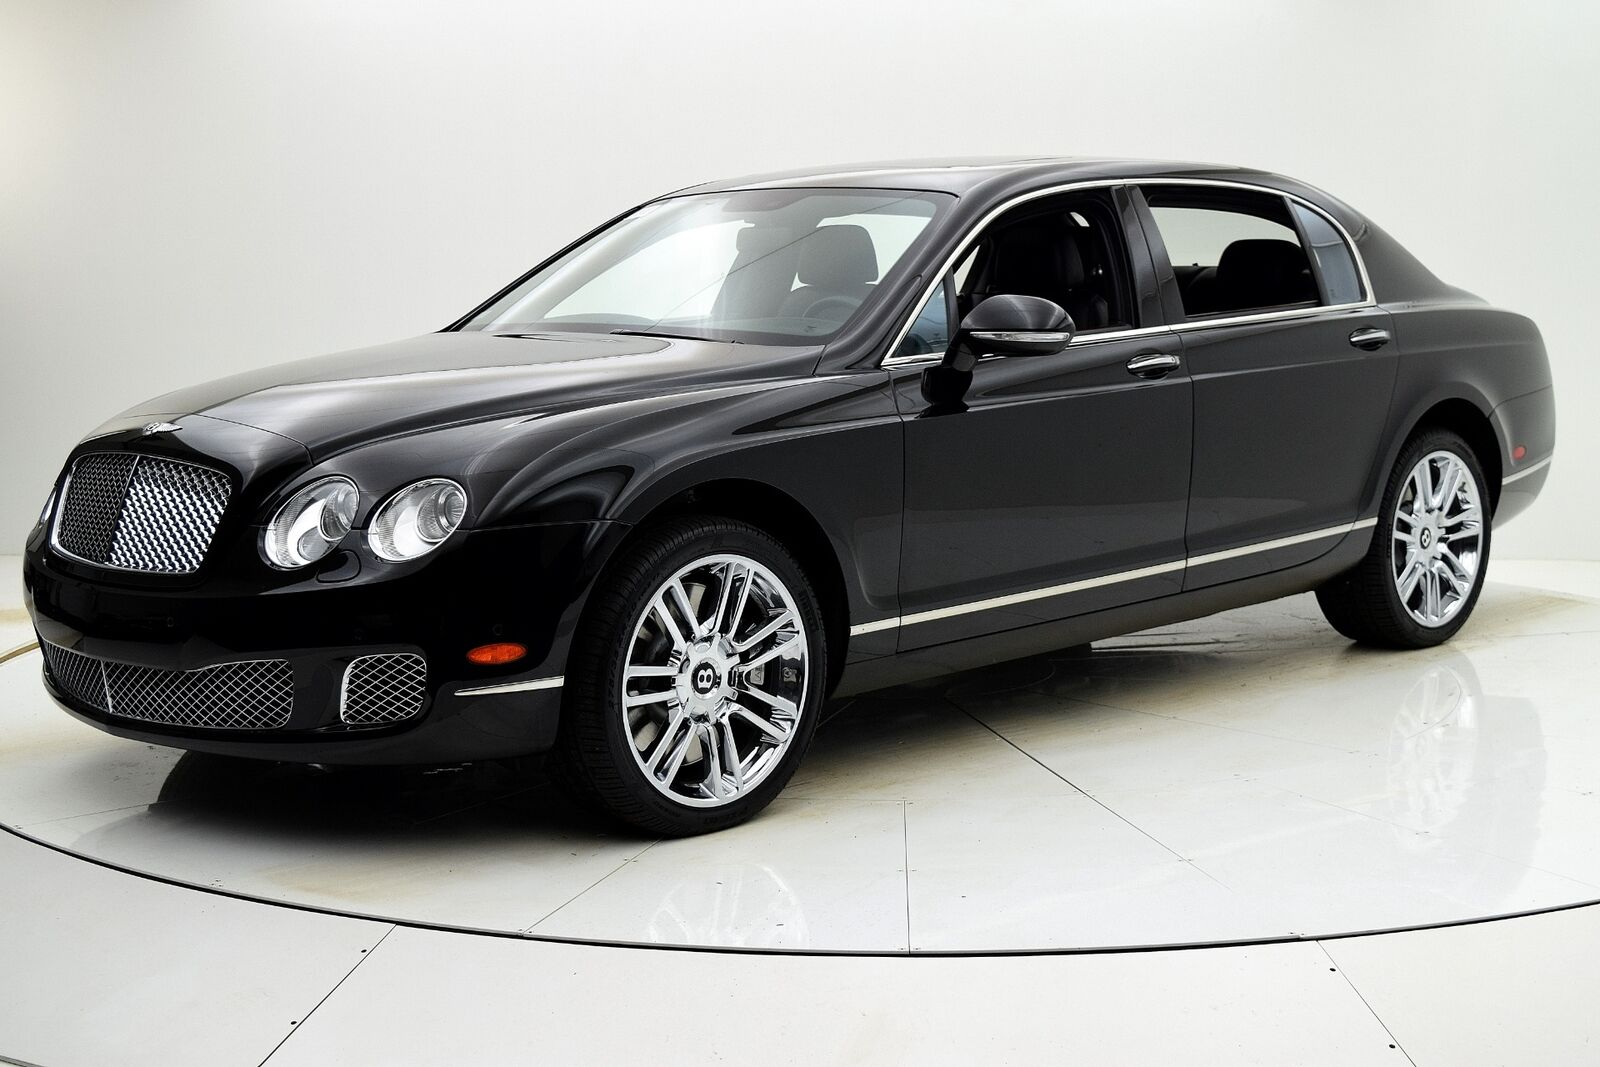 2012 Bentley Continental Flying Spur, 21,416 Miles, Sold & Serviced By Us New